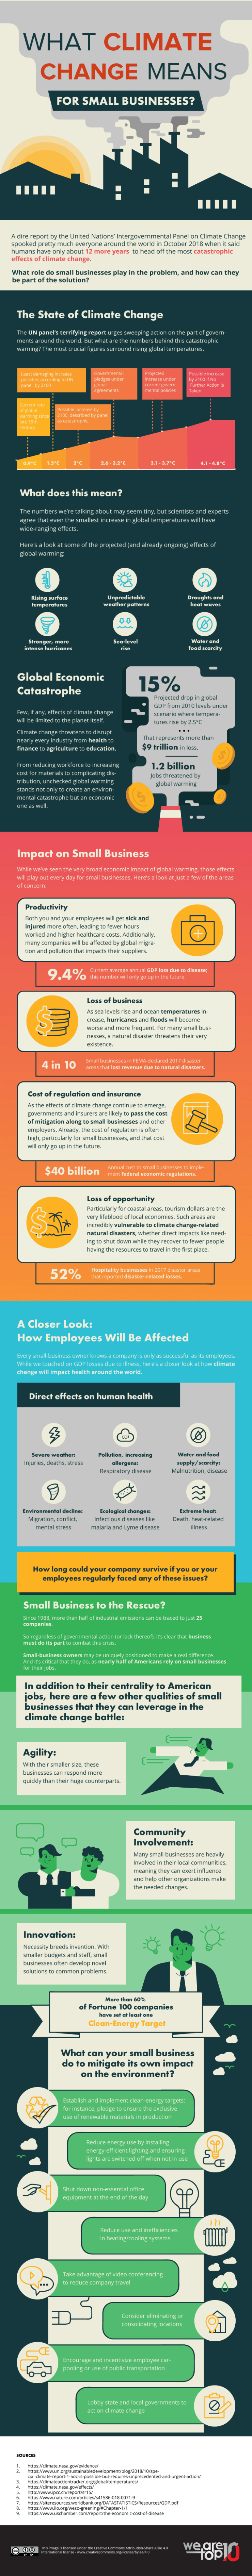 What Climate Change Means for Small Businesses Infographic